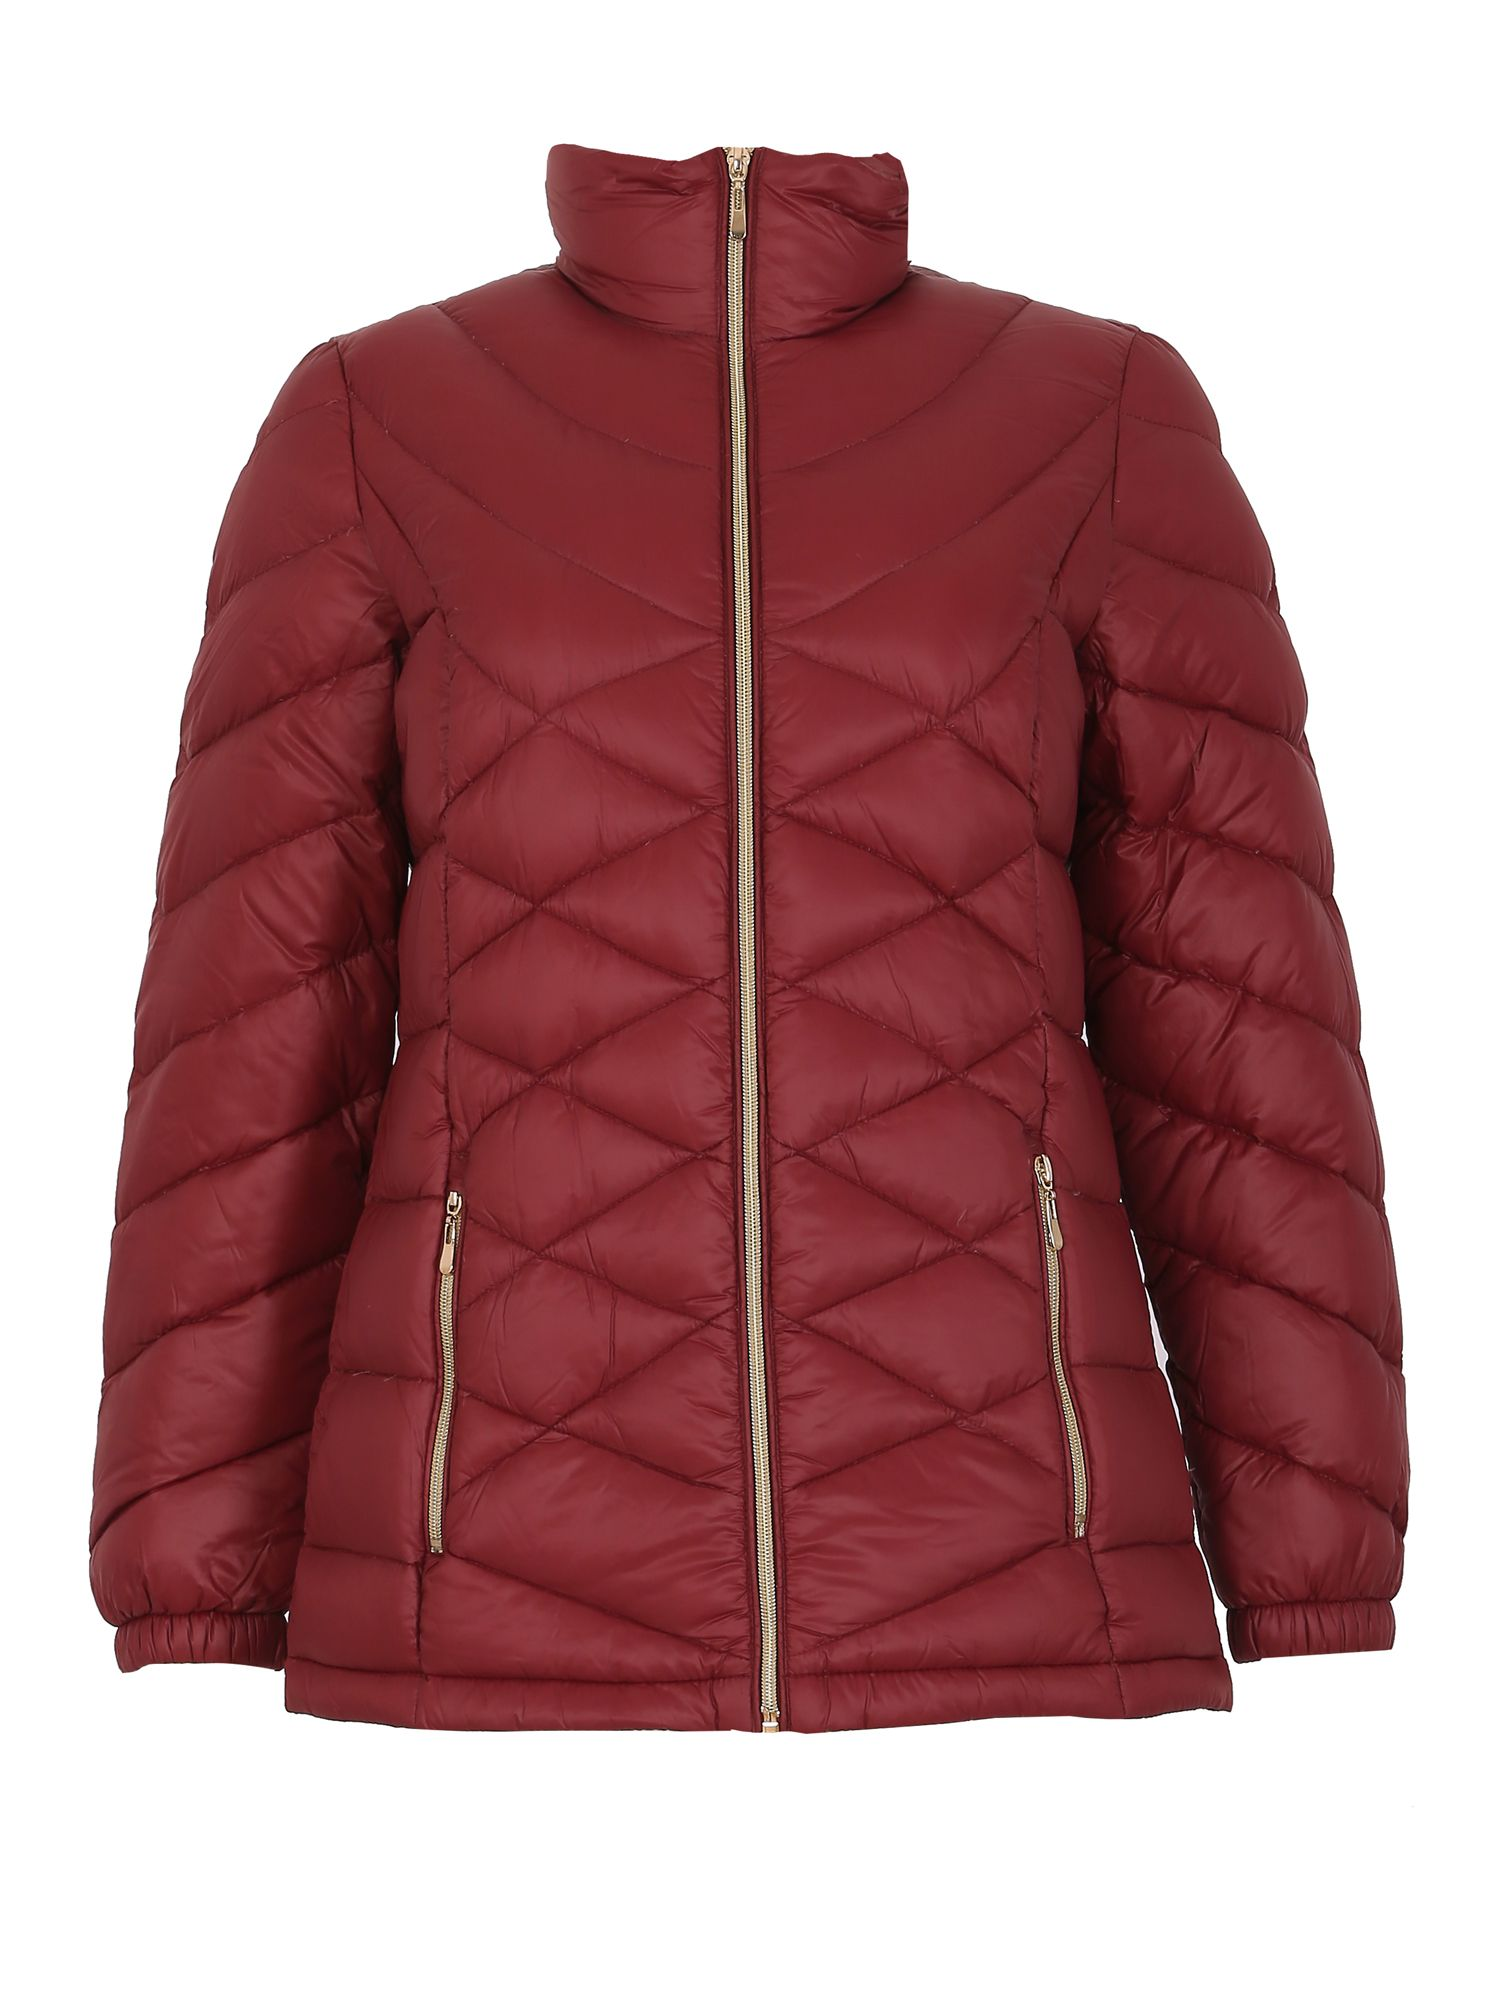 David Barry Lightweight Down & Feather Hooded Jacket, Red